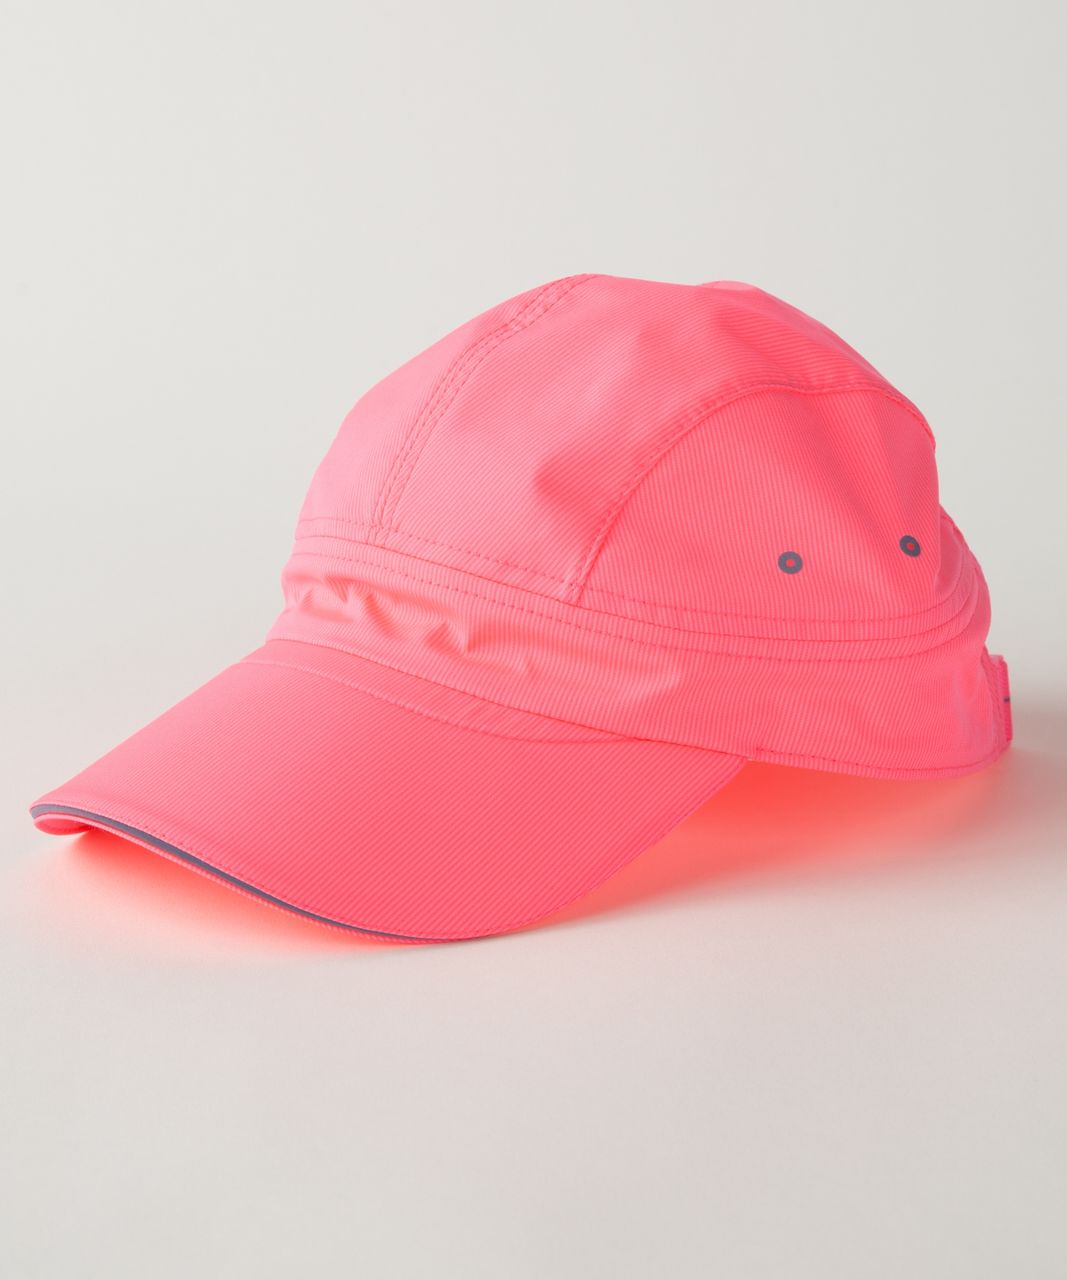 Lululemon Race To Place Run Hat 2.0 - Flash Light